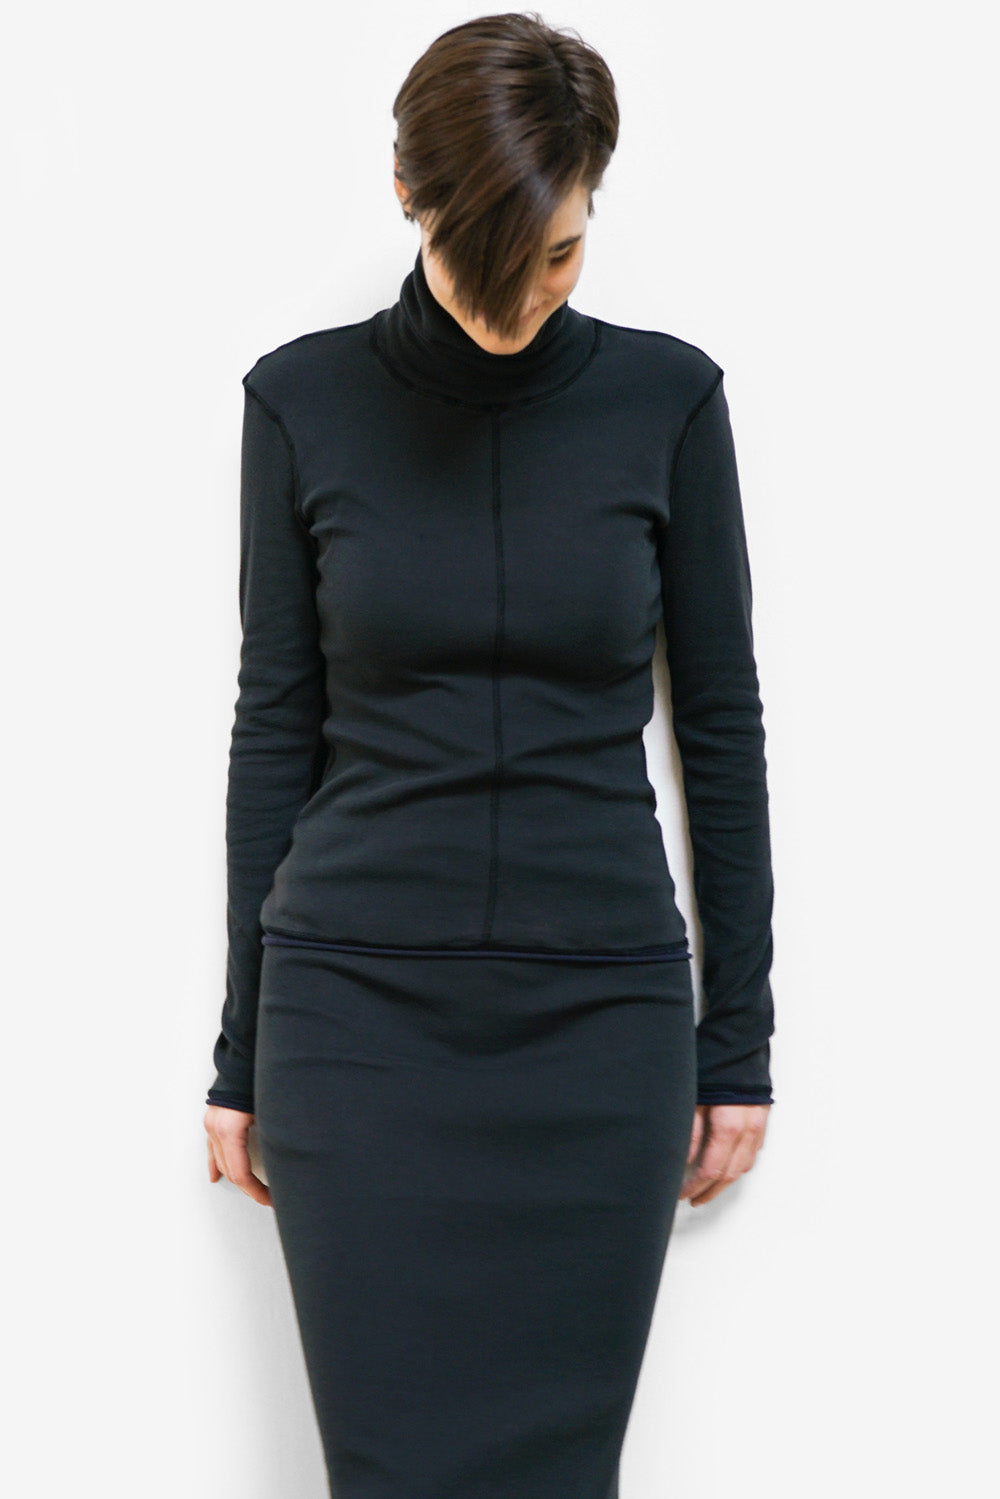 alabama chanin the rib turtleneck top with long sleeves made with organic cotton on model